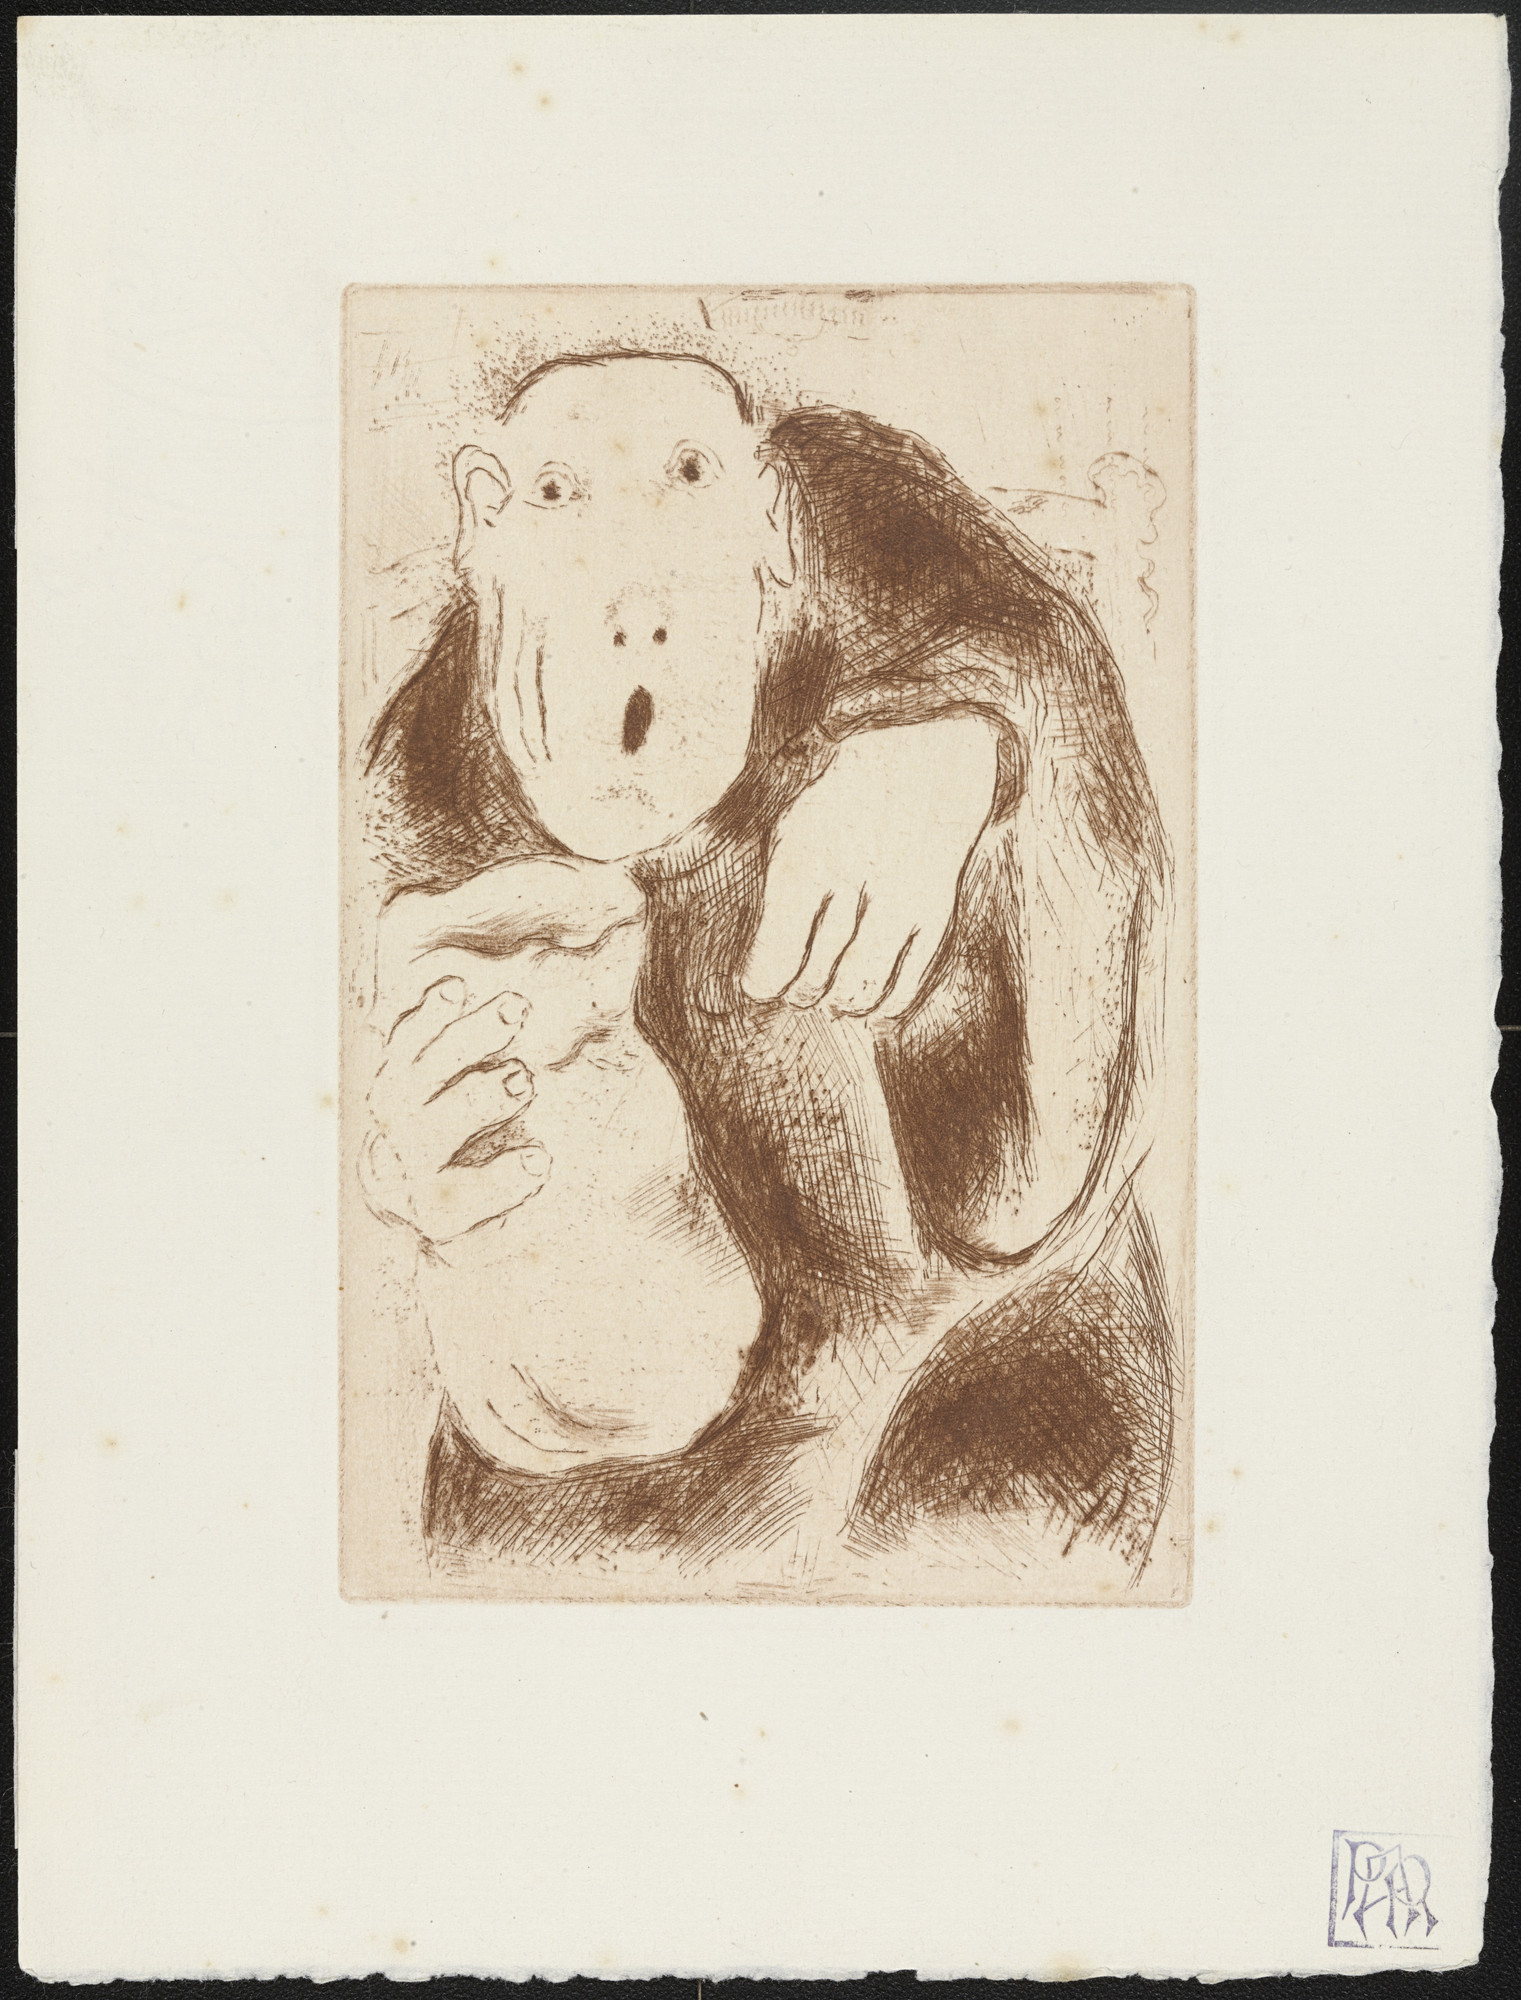 Marc Chagall. Avarice I (L'Avarice I) from The Seven Deadly Sins (Les Sept péchés capitaux). 1925, published 1926